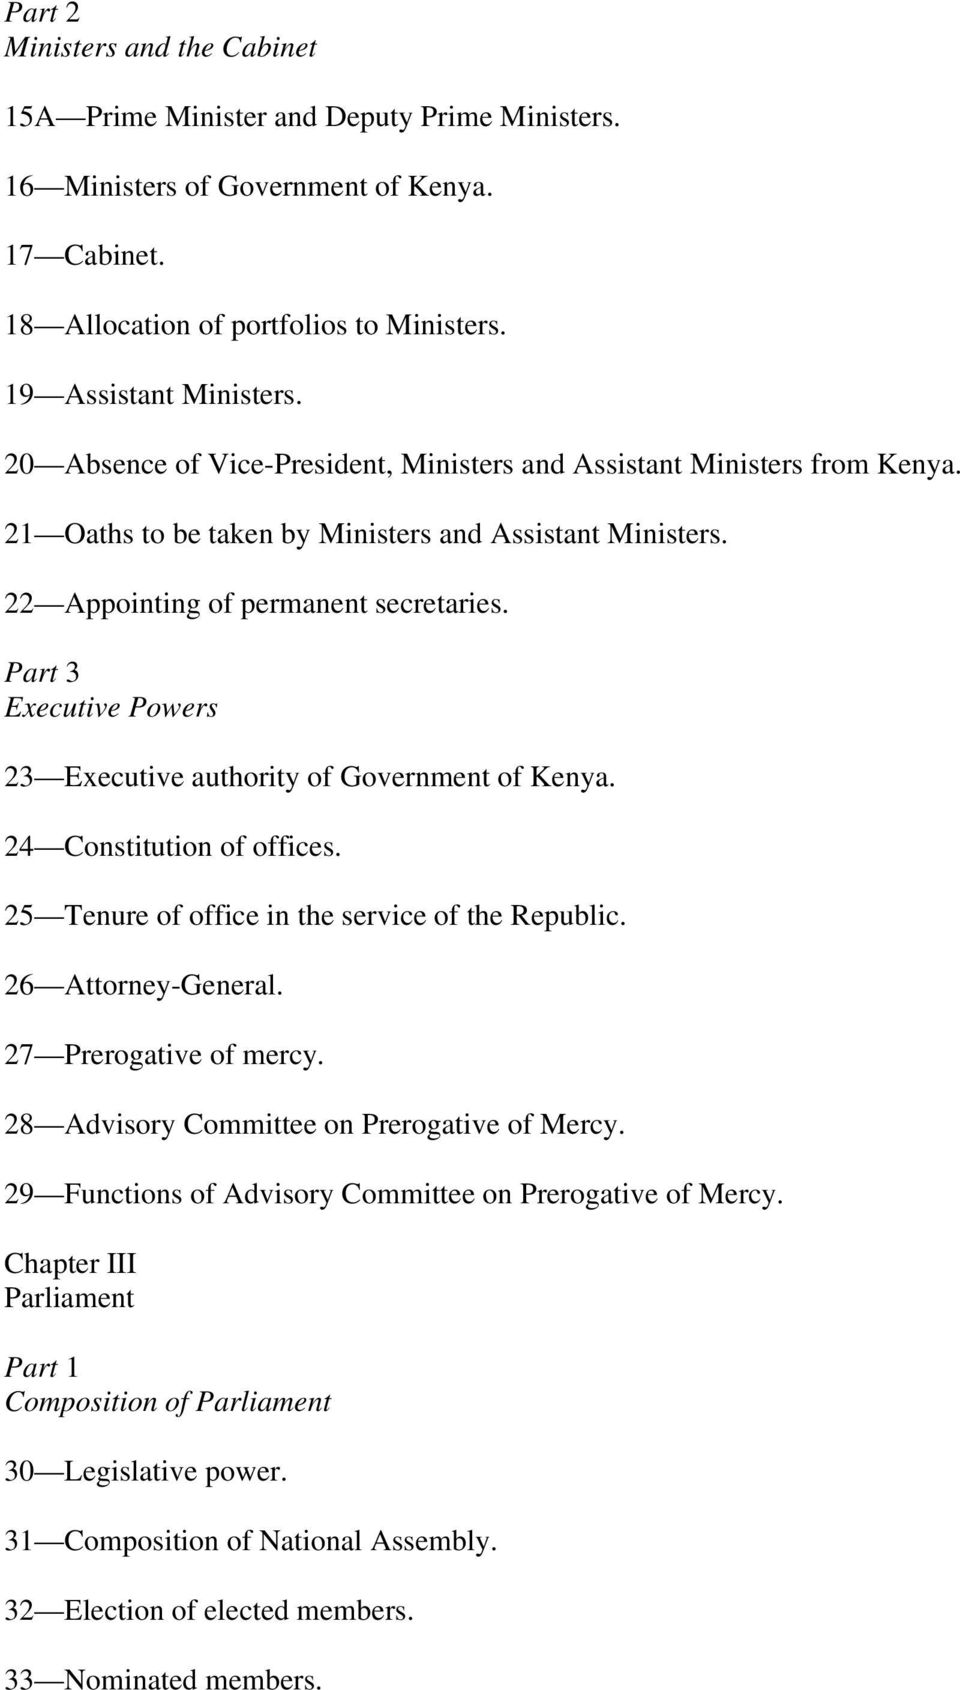 Part 3 Executive Powers 23 Executive authority of Government of Kenya. 24 Constitution of offices. 25 Tenure of office in the service of the Republic. 26 Attorney-General. 27 Prerogative of mercy.